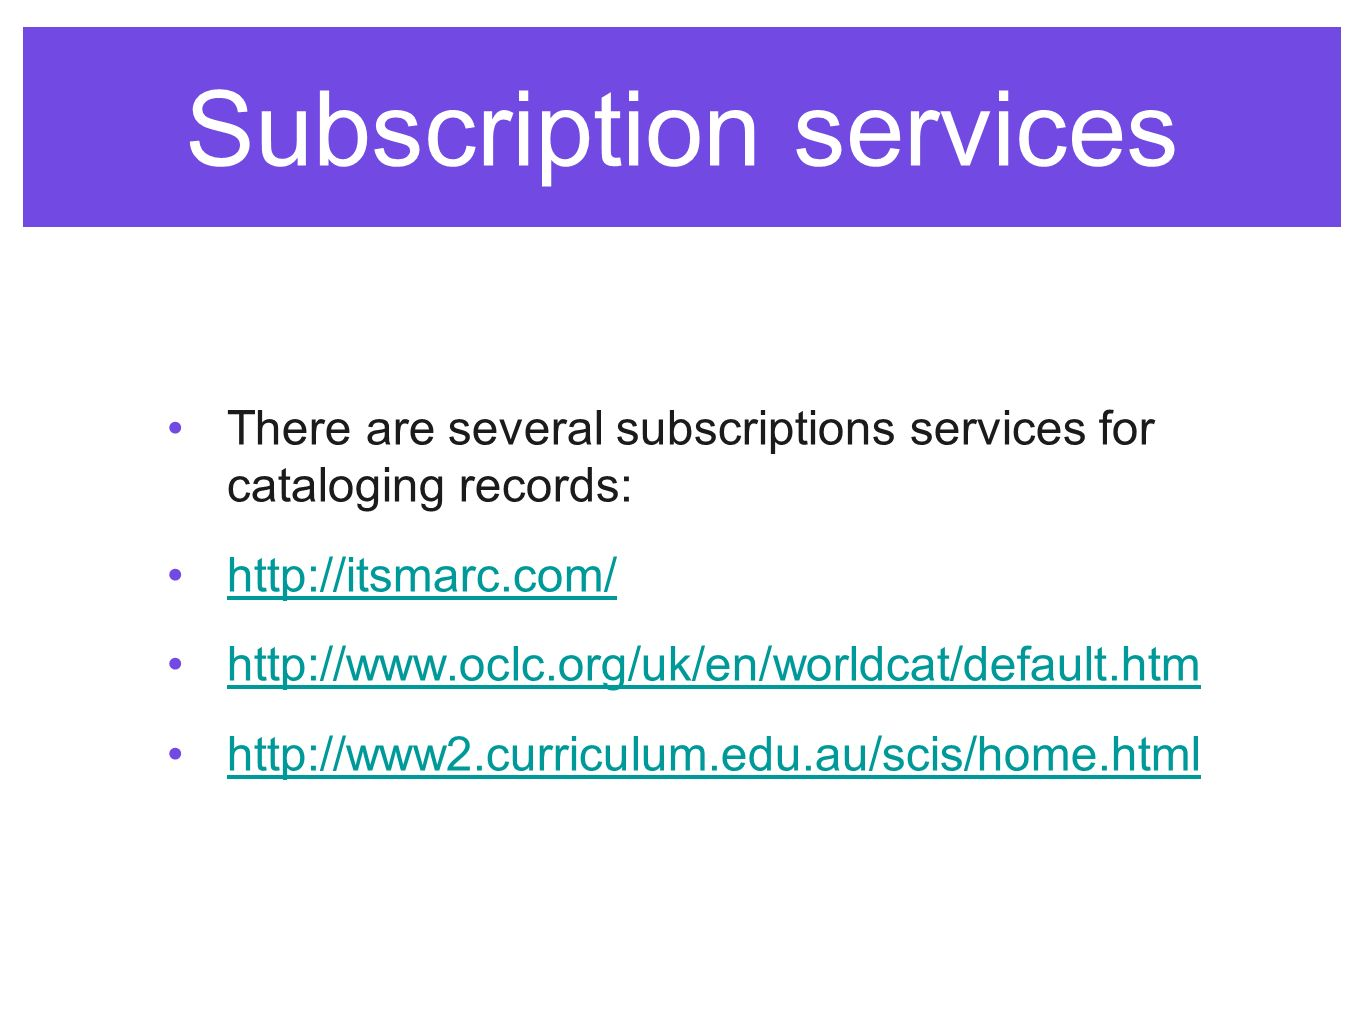 Subscription services There are several subscriptions services for cataloging records: